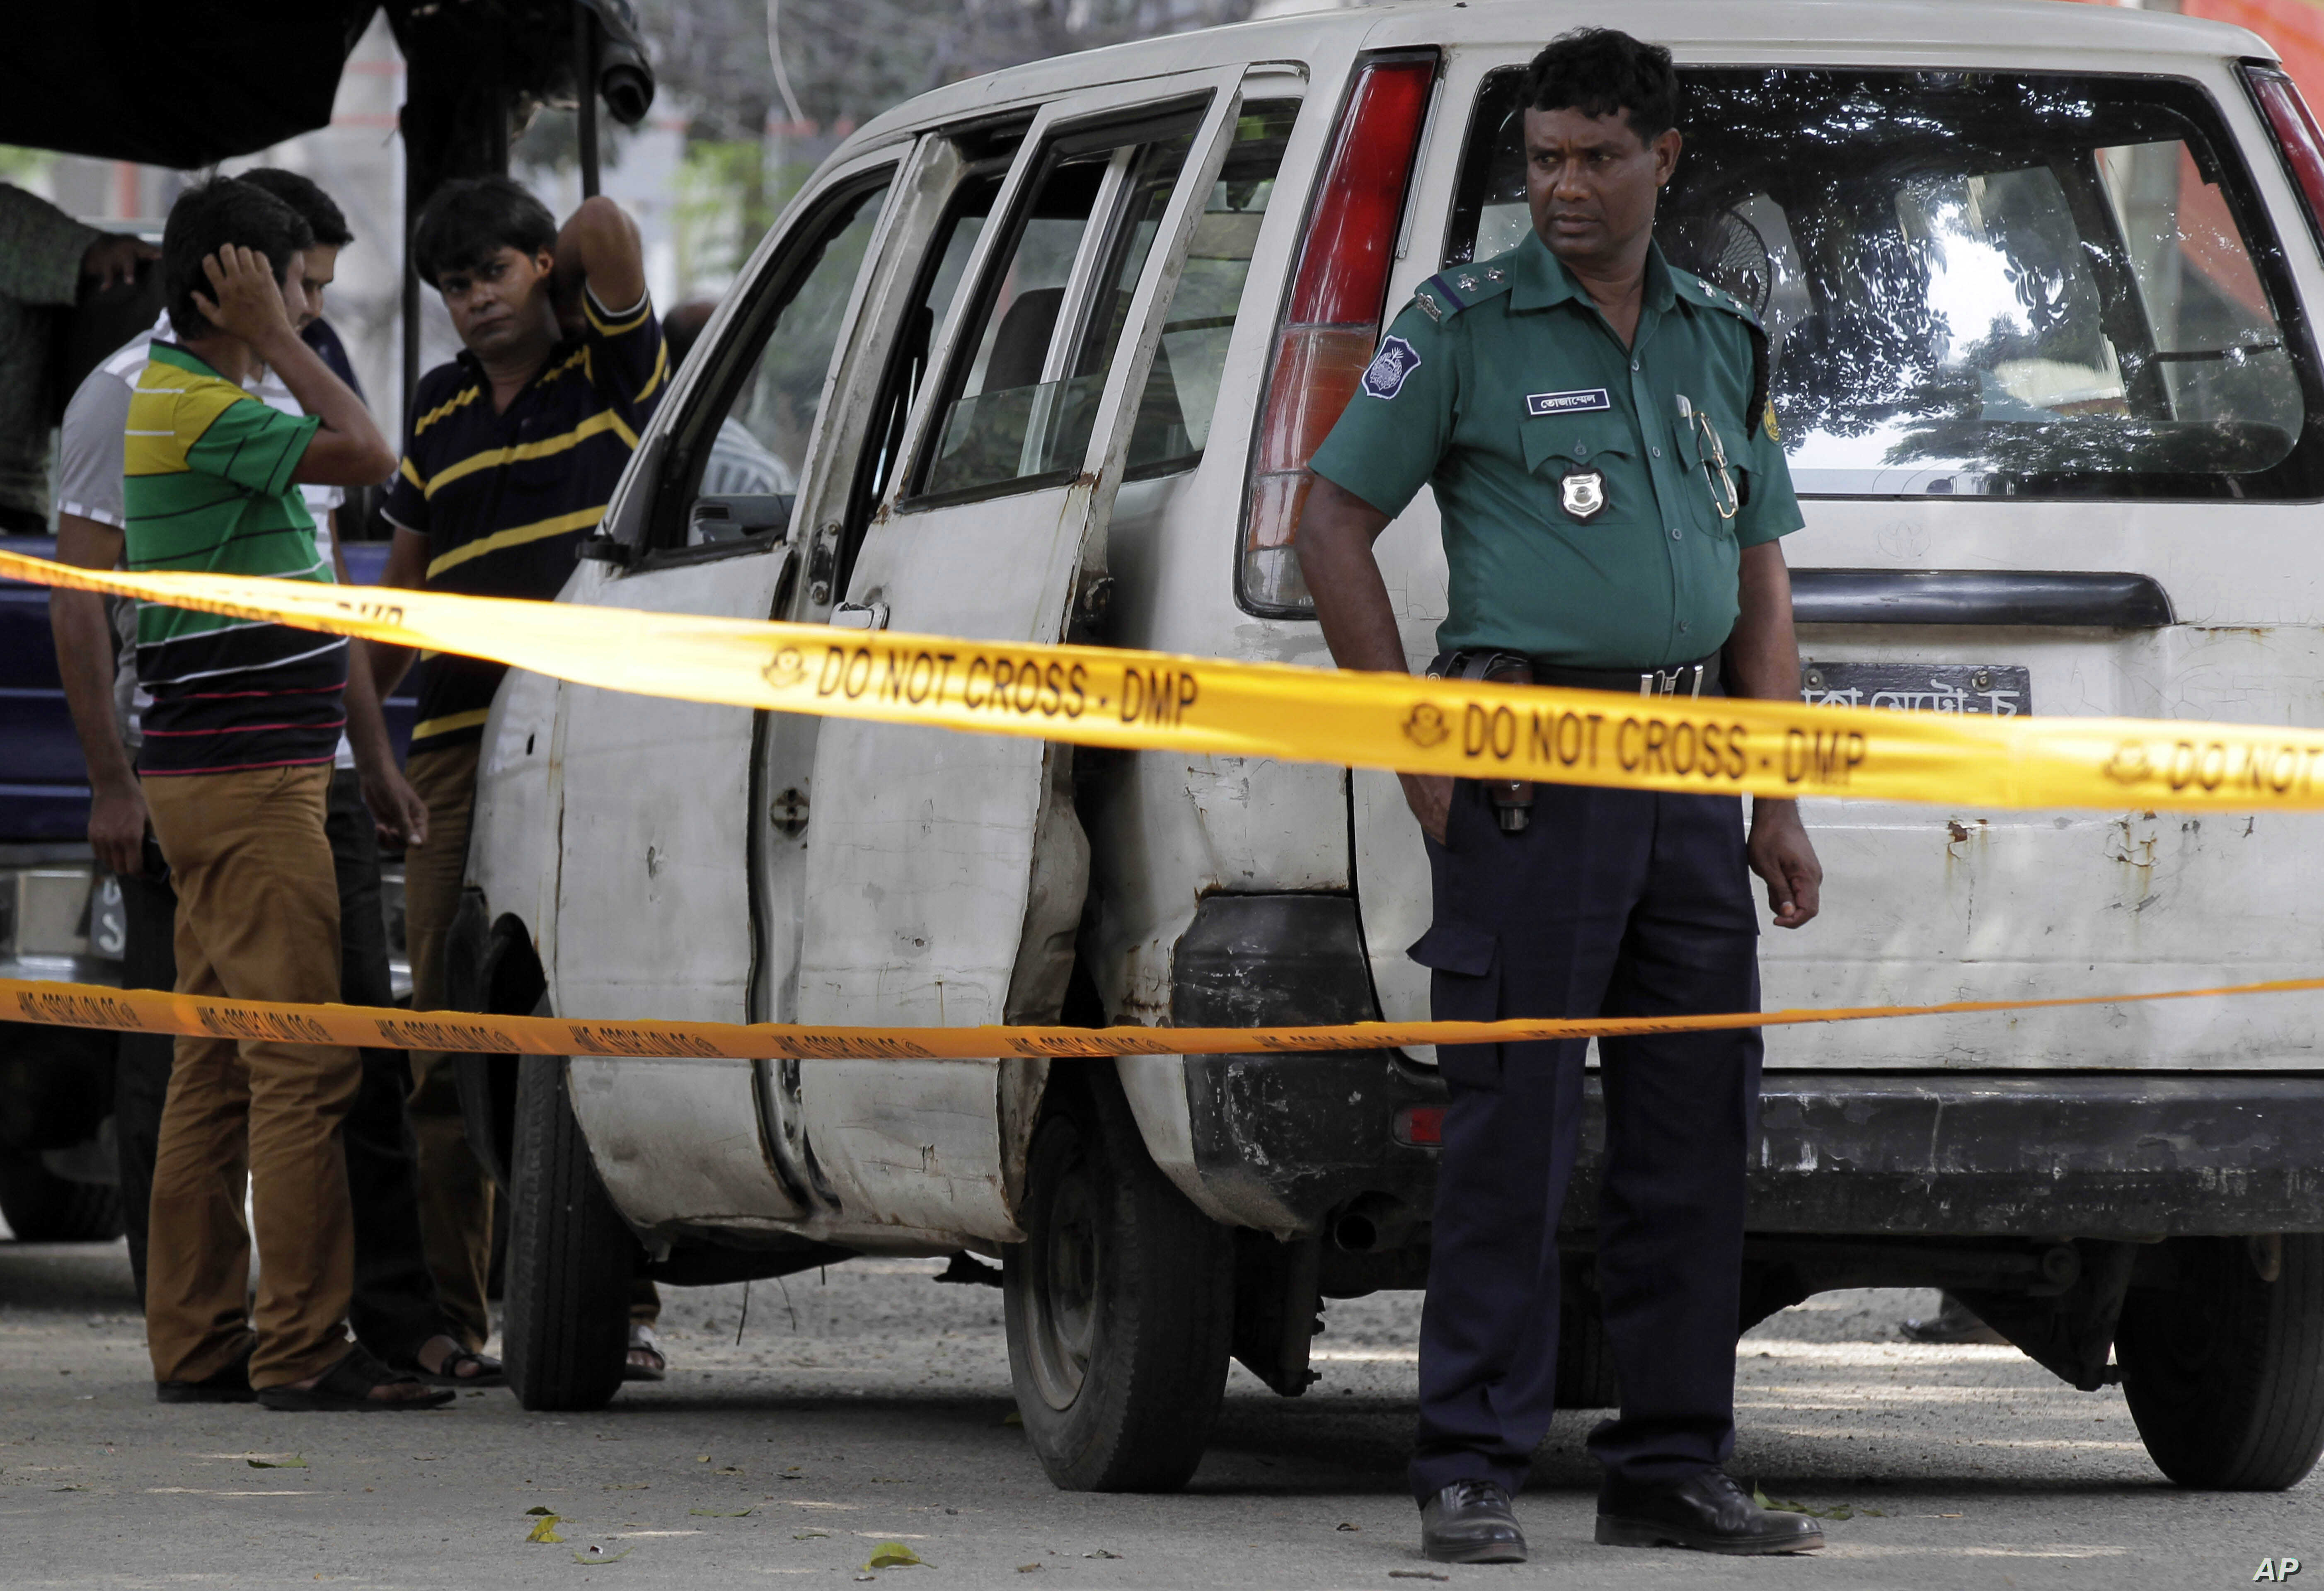 Members of Bangladeshi police and detective branch stand by the site where Italian citizen Cesare Tavella was gunned down by unidentified assailants in Dhaka, Bangladesh, Sept. 29, 2015.